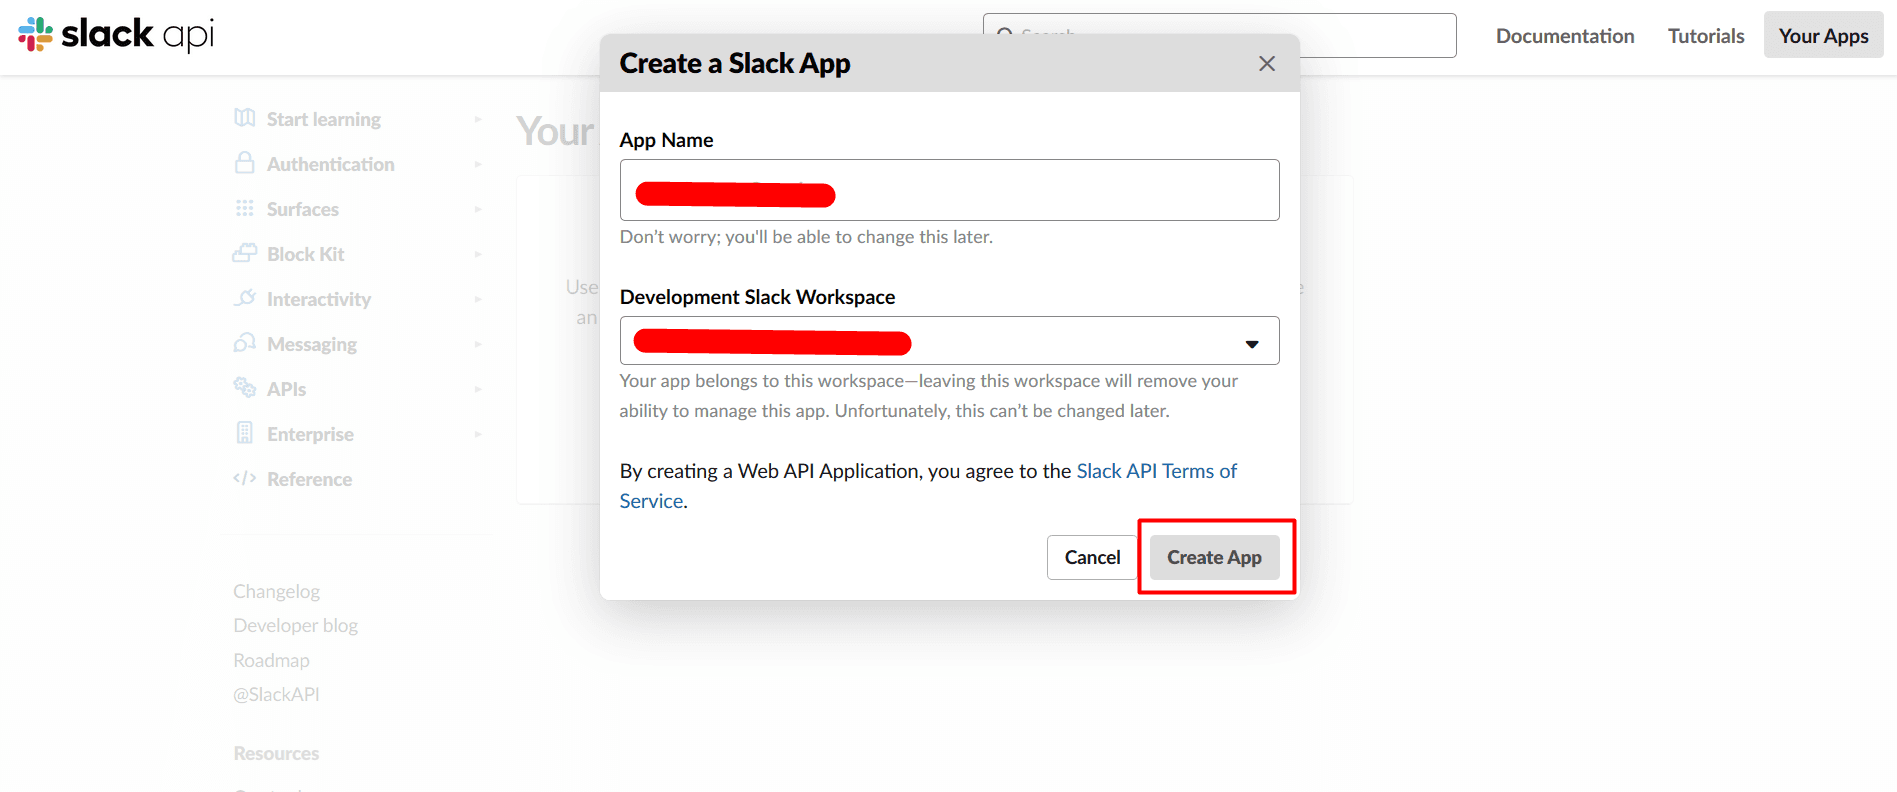 slack give app name for OAuth Client